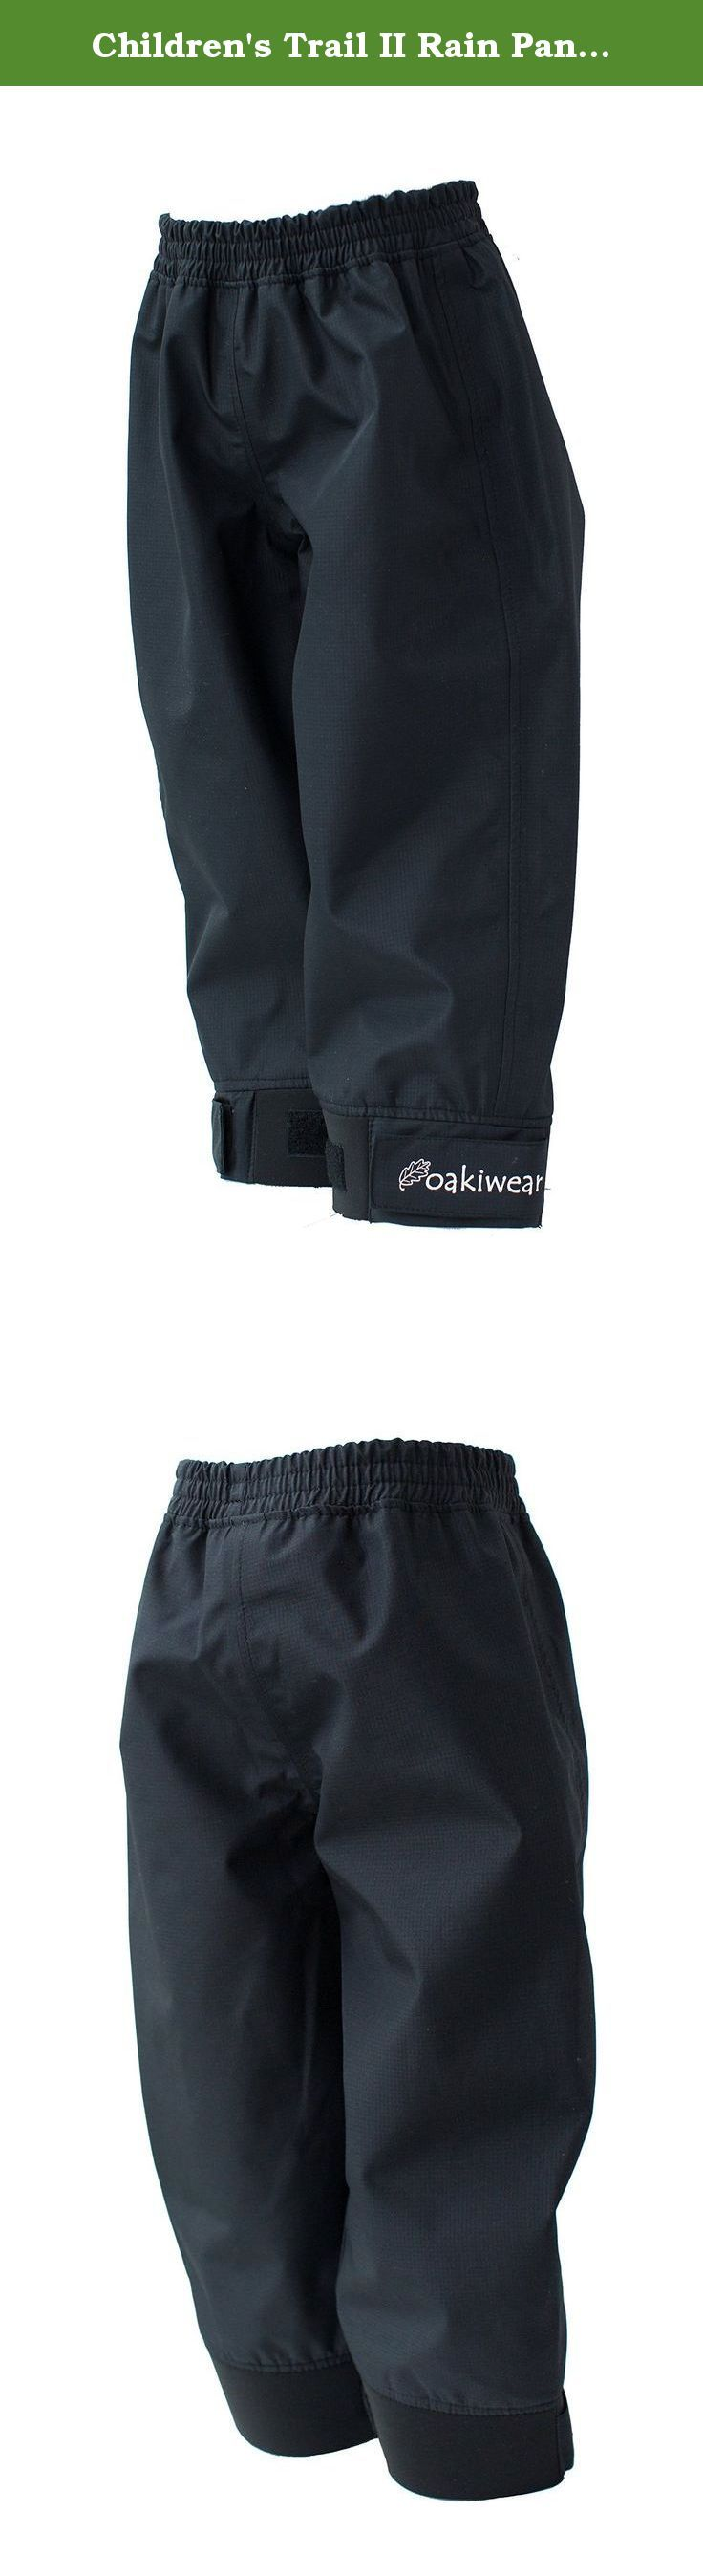 Children's Trail II Rain Pants, Black, 12/13. These rain pants are as tough as it gets- made with 240T pongee with a transparent TPU membrane. Whether you're hiking, camping, jumping on the playground, or simply caught in the rain, these rain pants will keep your kiddo dry and happy.